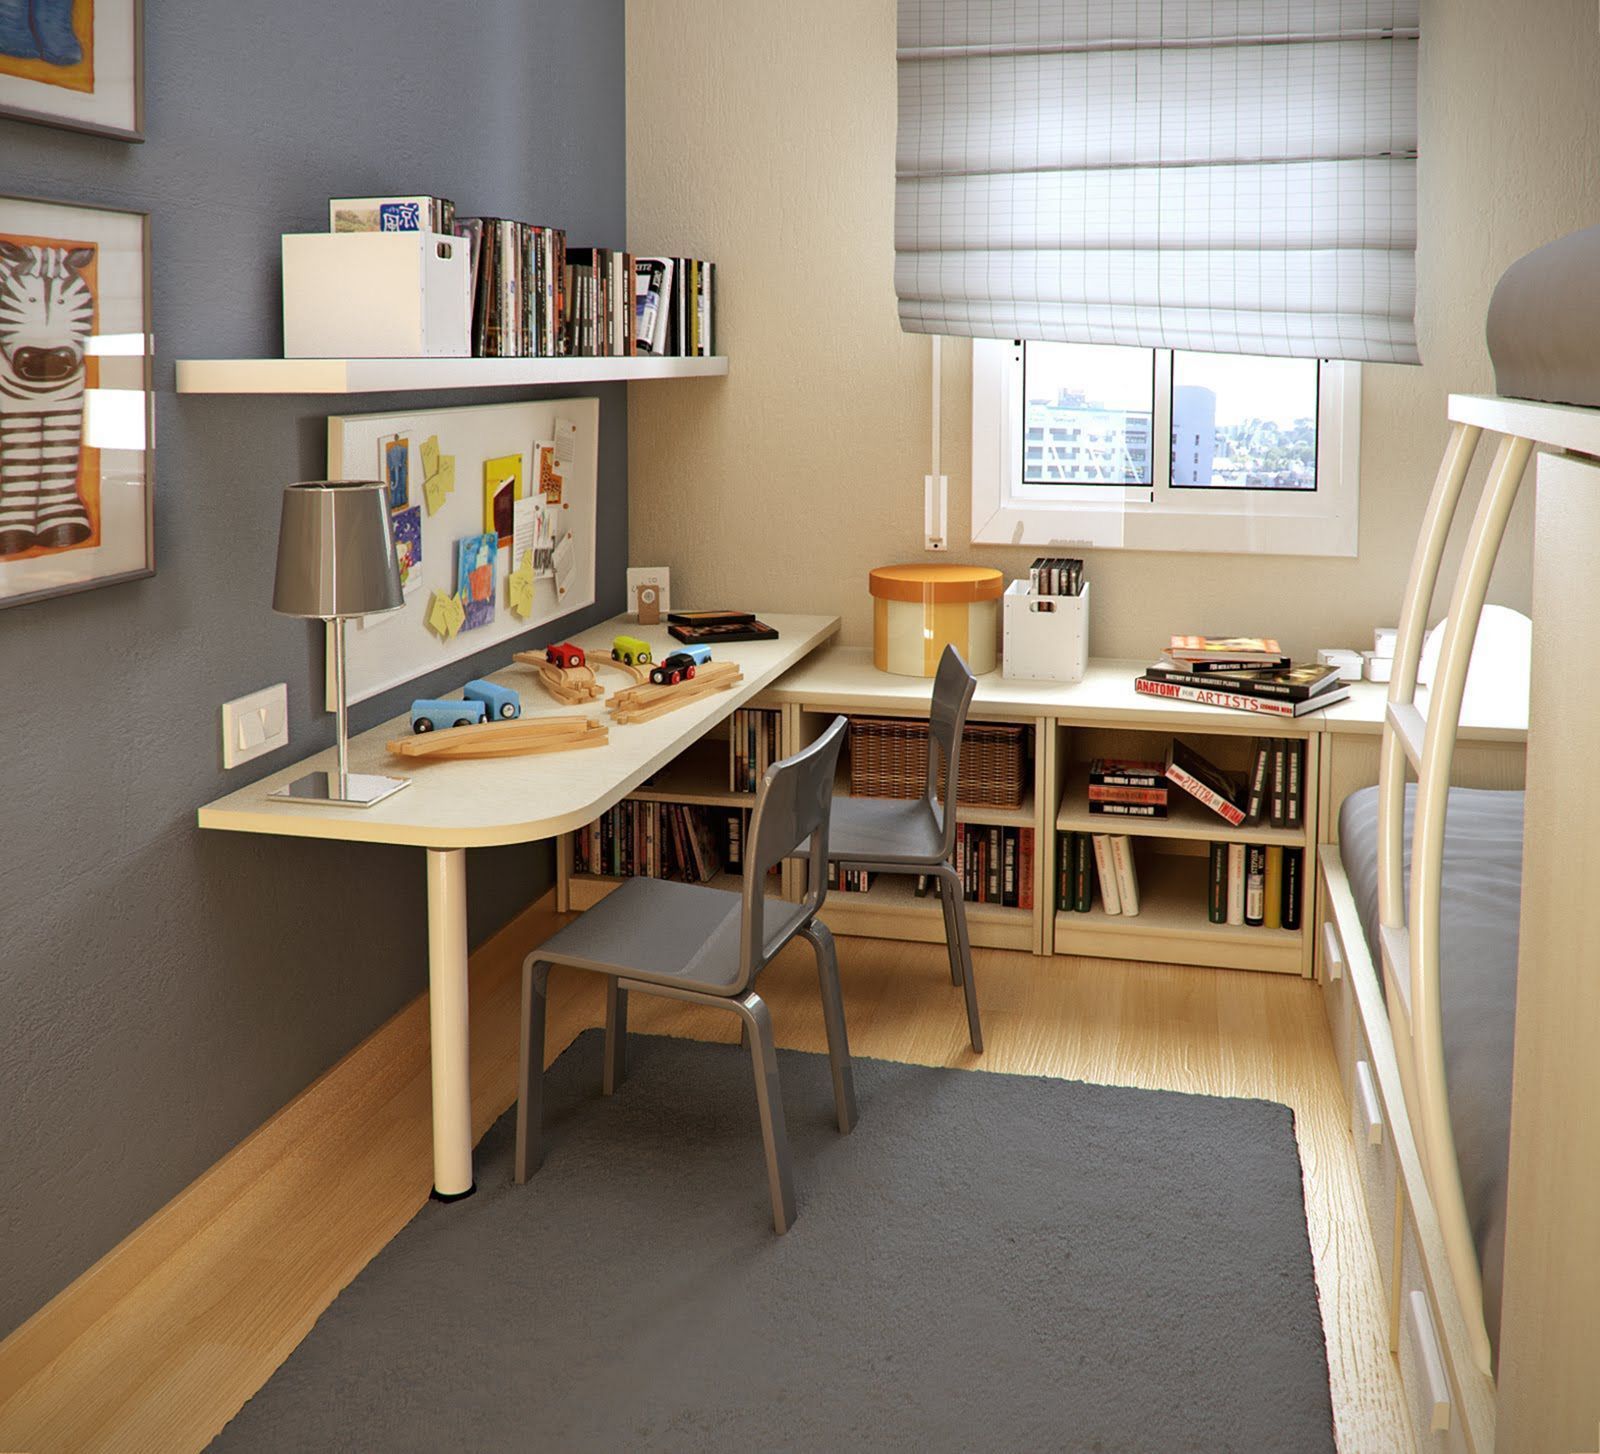 Epic 20 Beautiful Study Rooms And Workspaces That You Must Try At Home Https Freedsgn Com 20 Bea Very Small Bedroom Small Room Design Apartment Bedroom Decor Small floorspace kids rooms